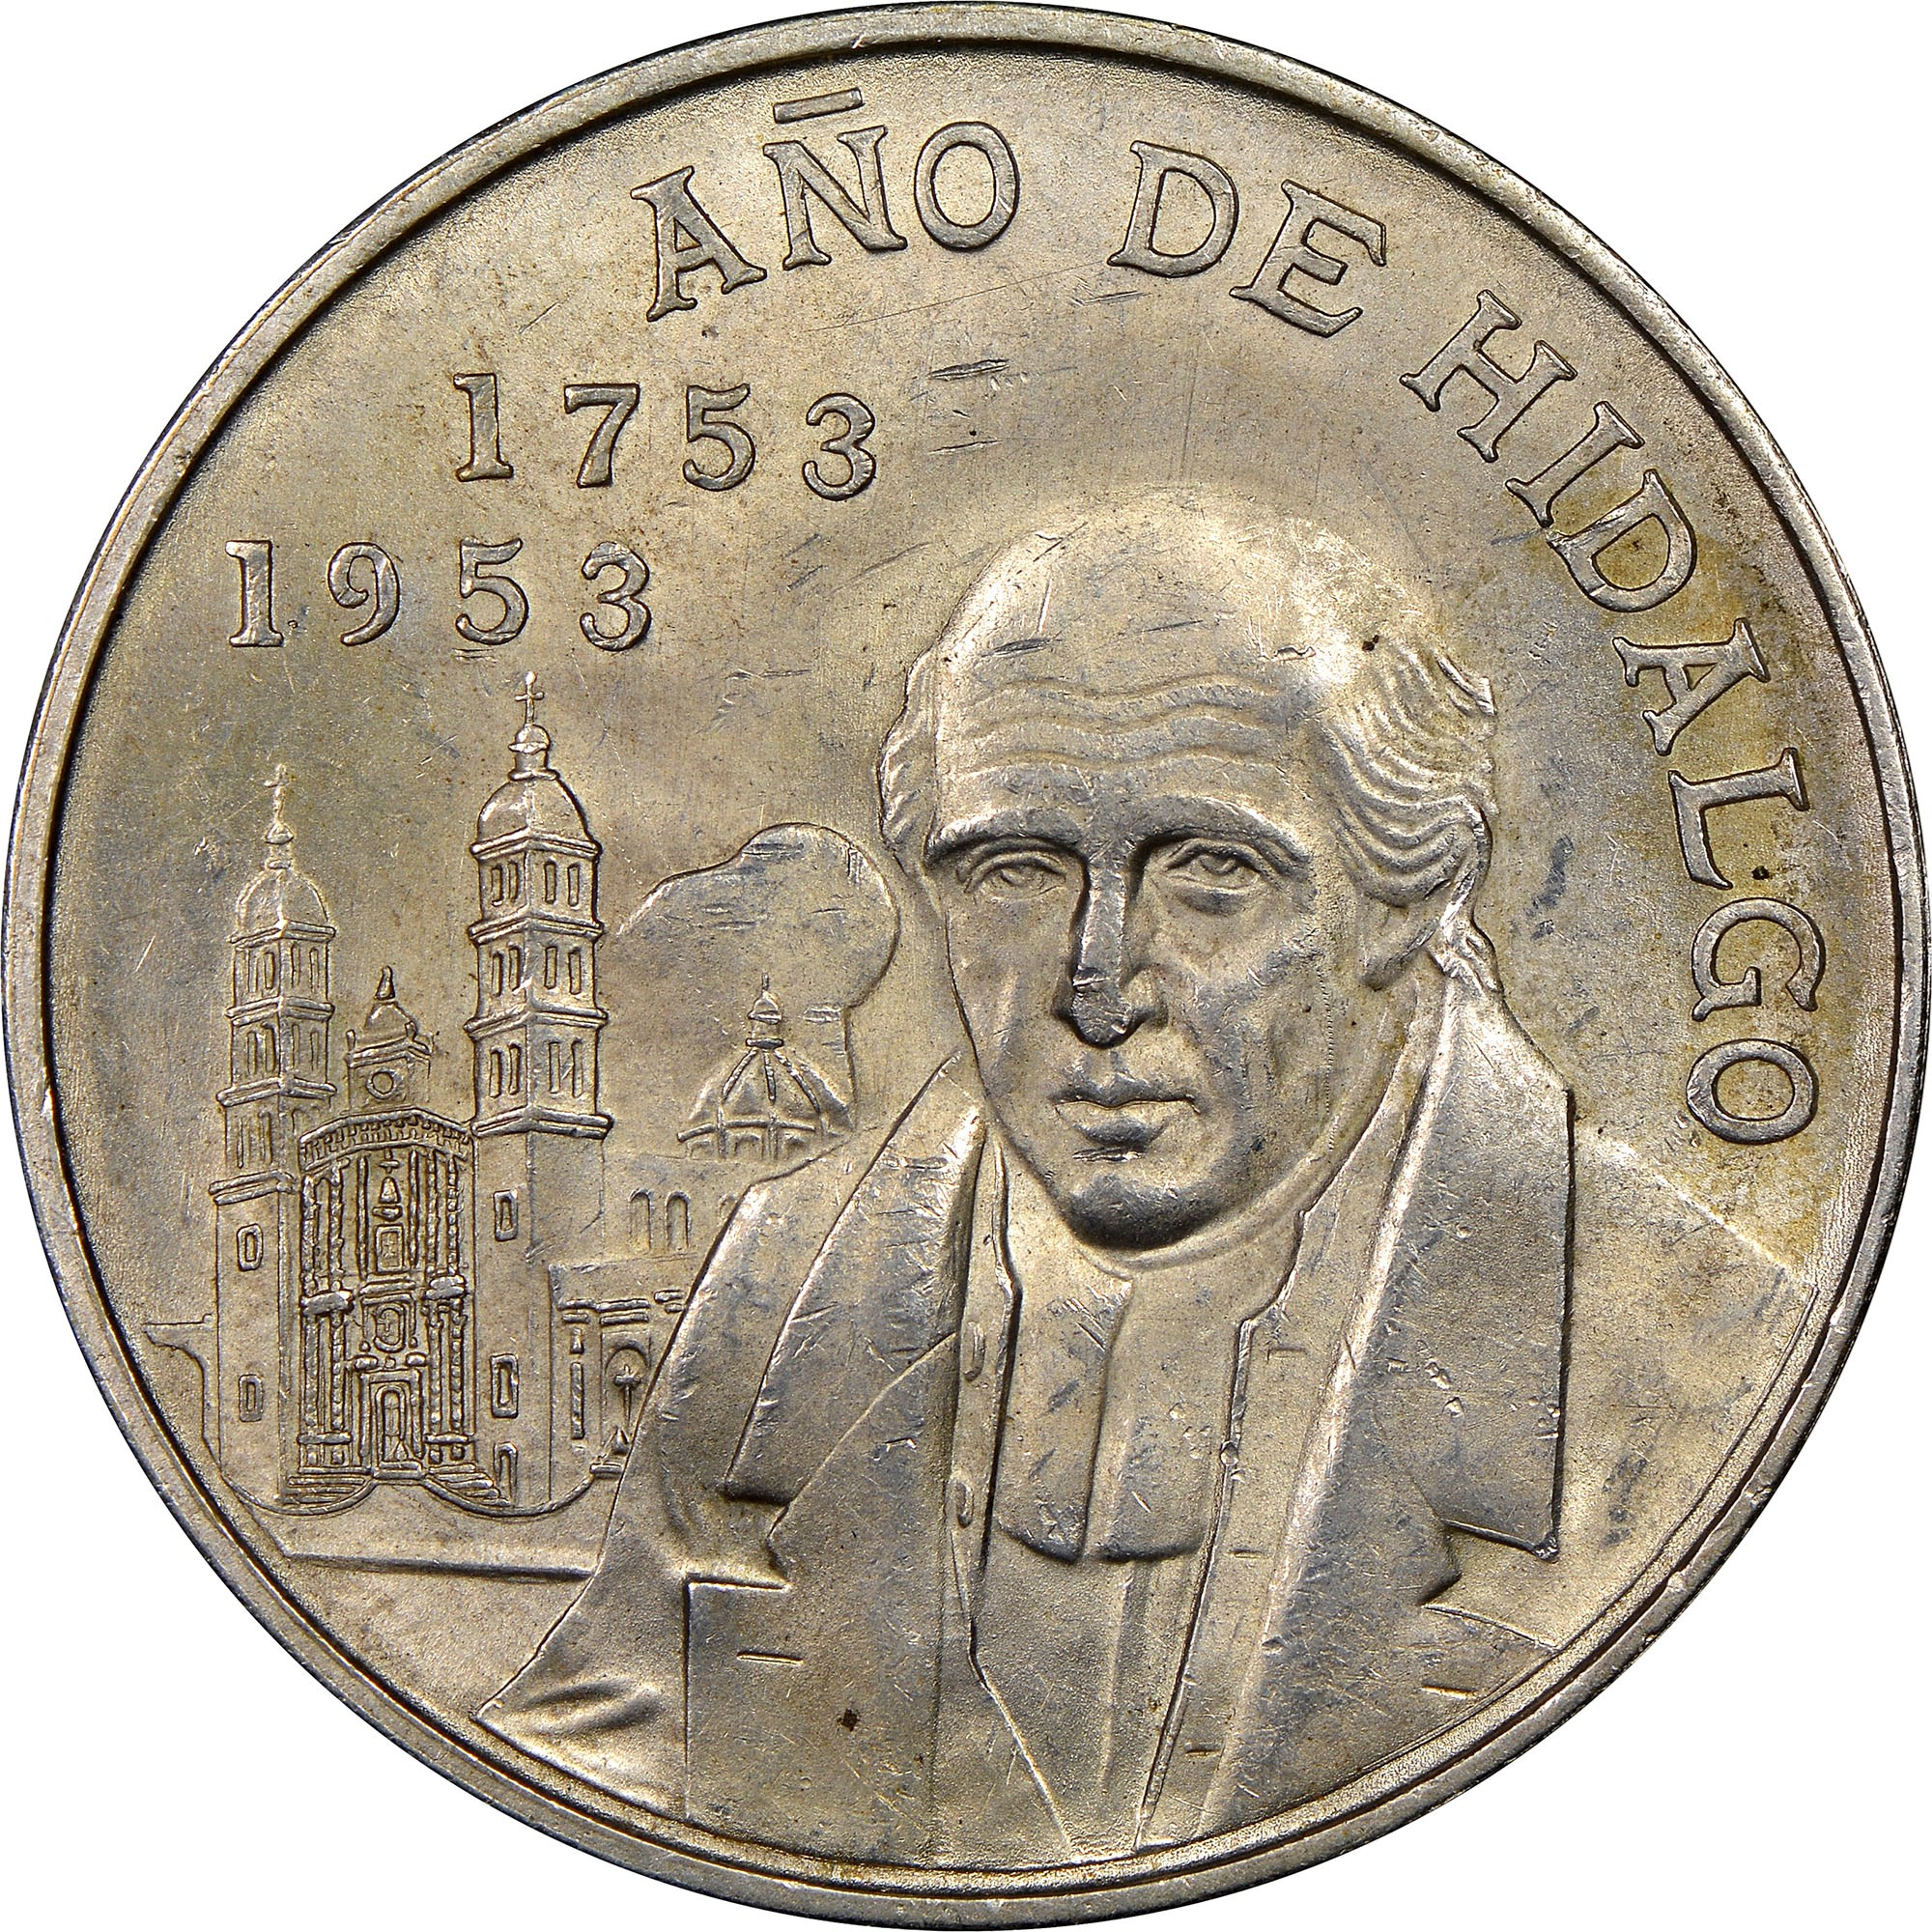 1953 estados unidos mexicanos coin value